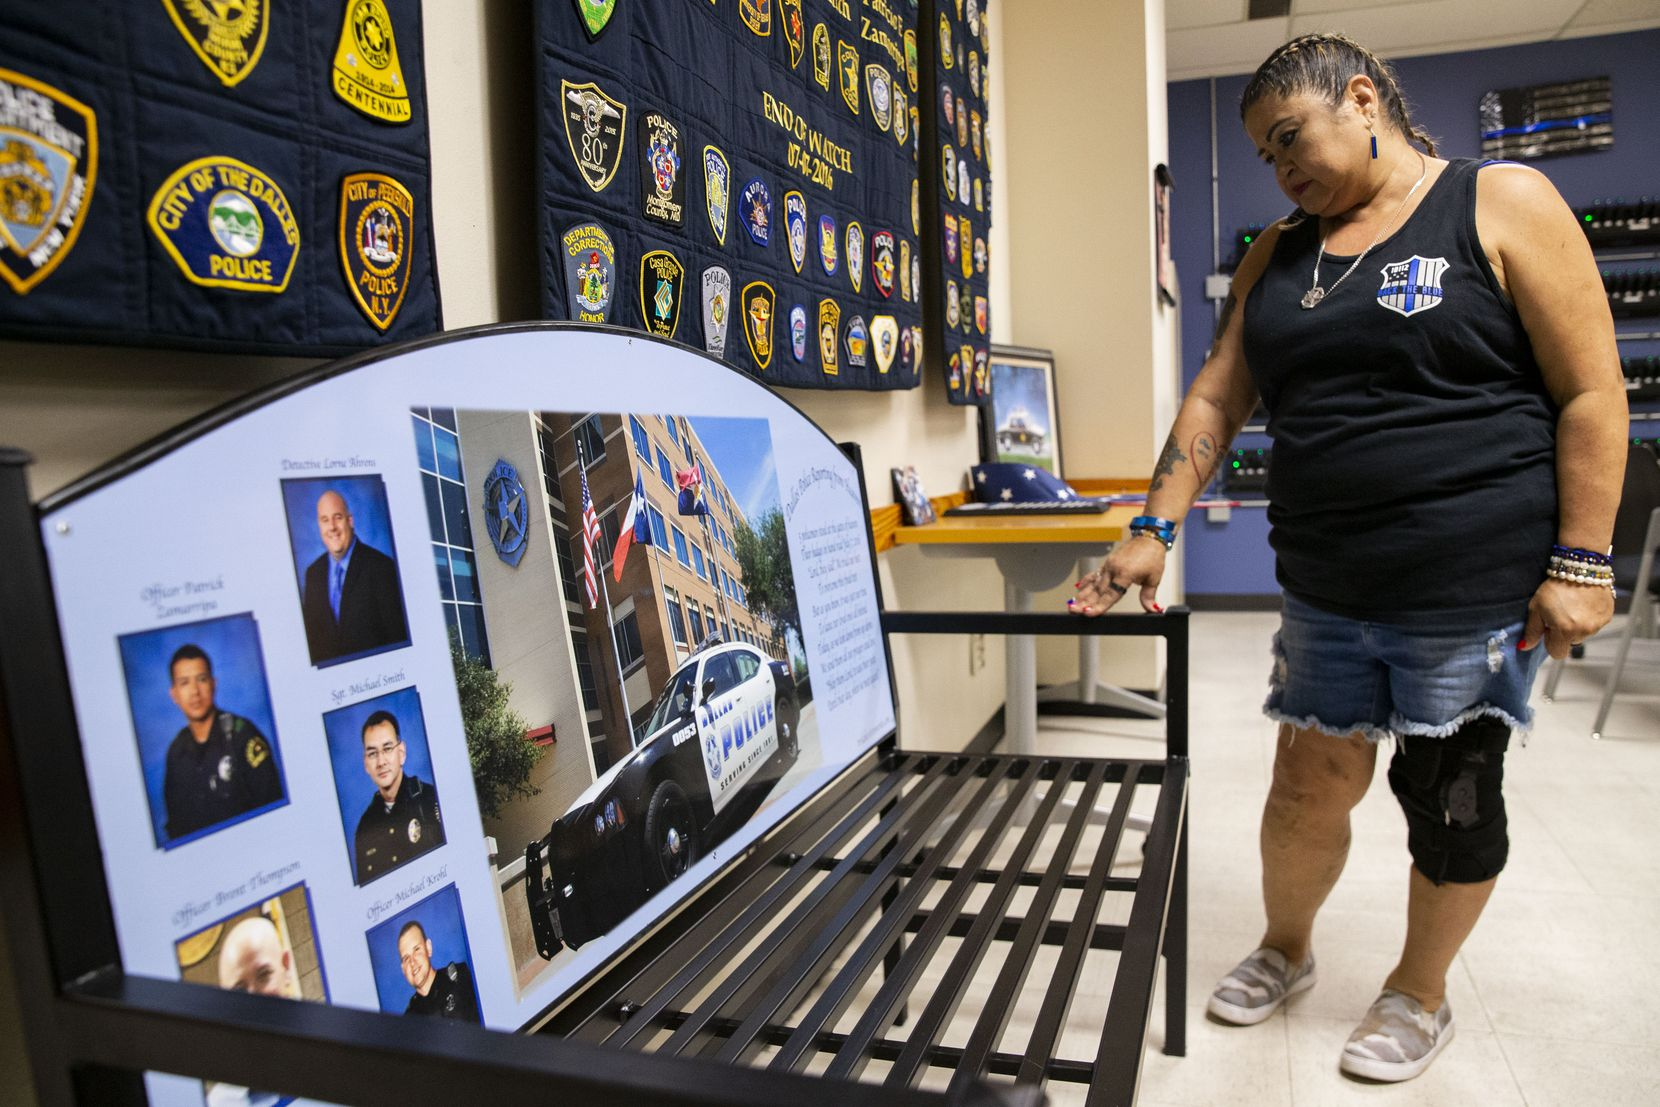 Valerie Zamarripa takes a moment while looking at a bench dedicated to the five Dallas police officers who were killed when a gunman ambushed a night of protests in downtown Dallas on July 7, 2016. She looks at the bench on Friday, July 2, 2021, at the Dallas Police Southwest Patrol division. Zamarripa's son, Patrick Zamarripa, was one of the five officers killed. (Juan Figueroa/The Dallas Morning News)